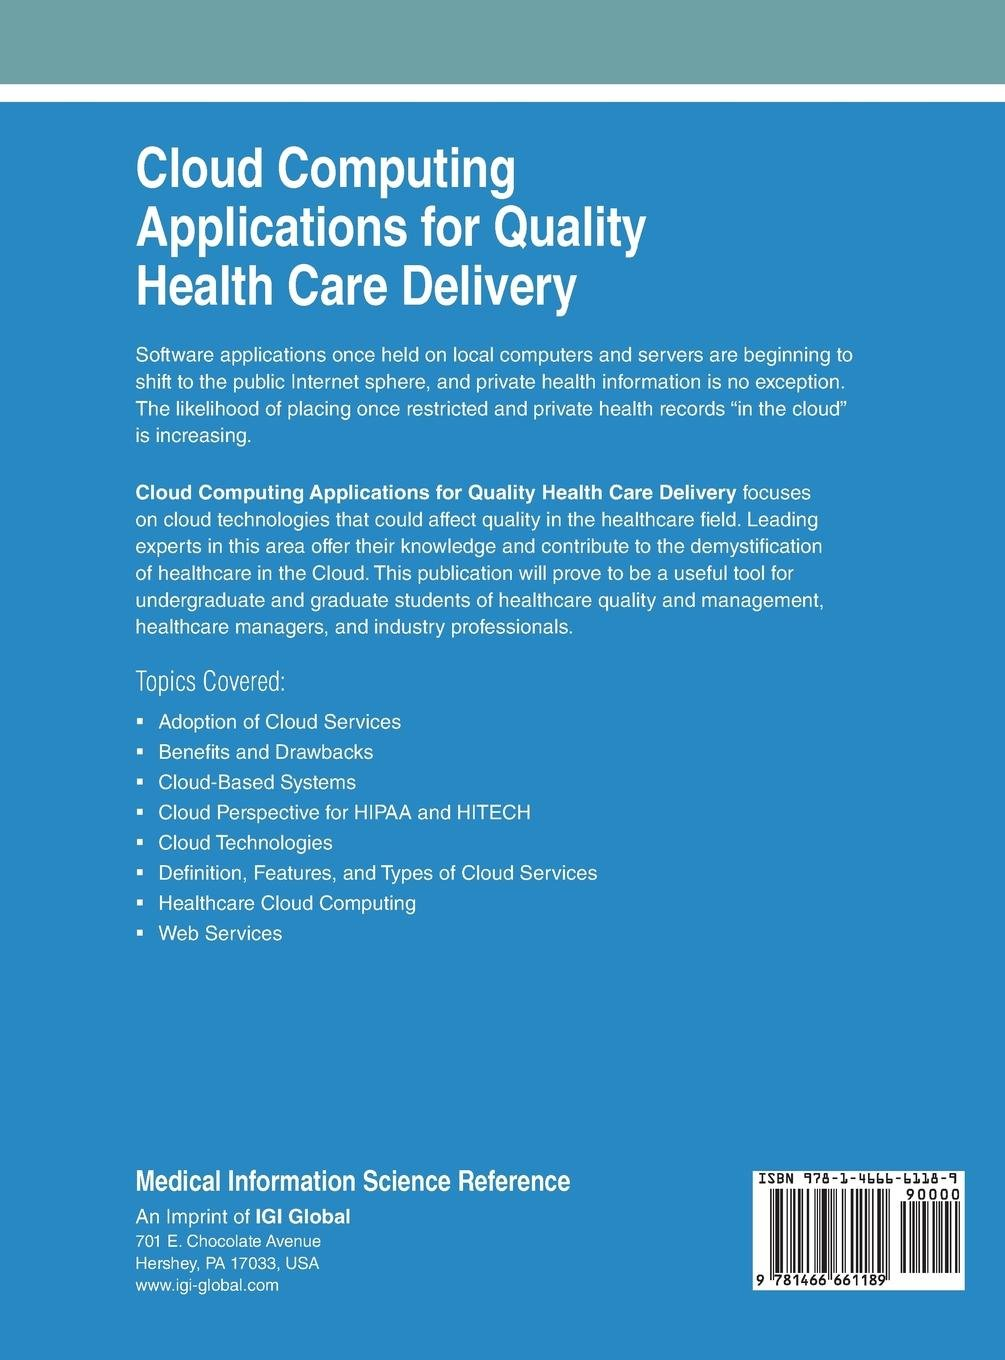 Buy Cloud Computing Applications for Quality Health Care